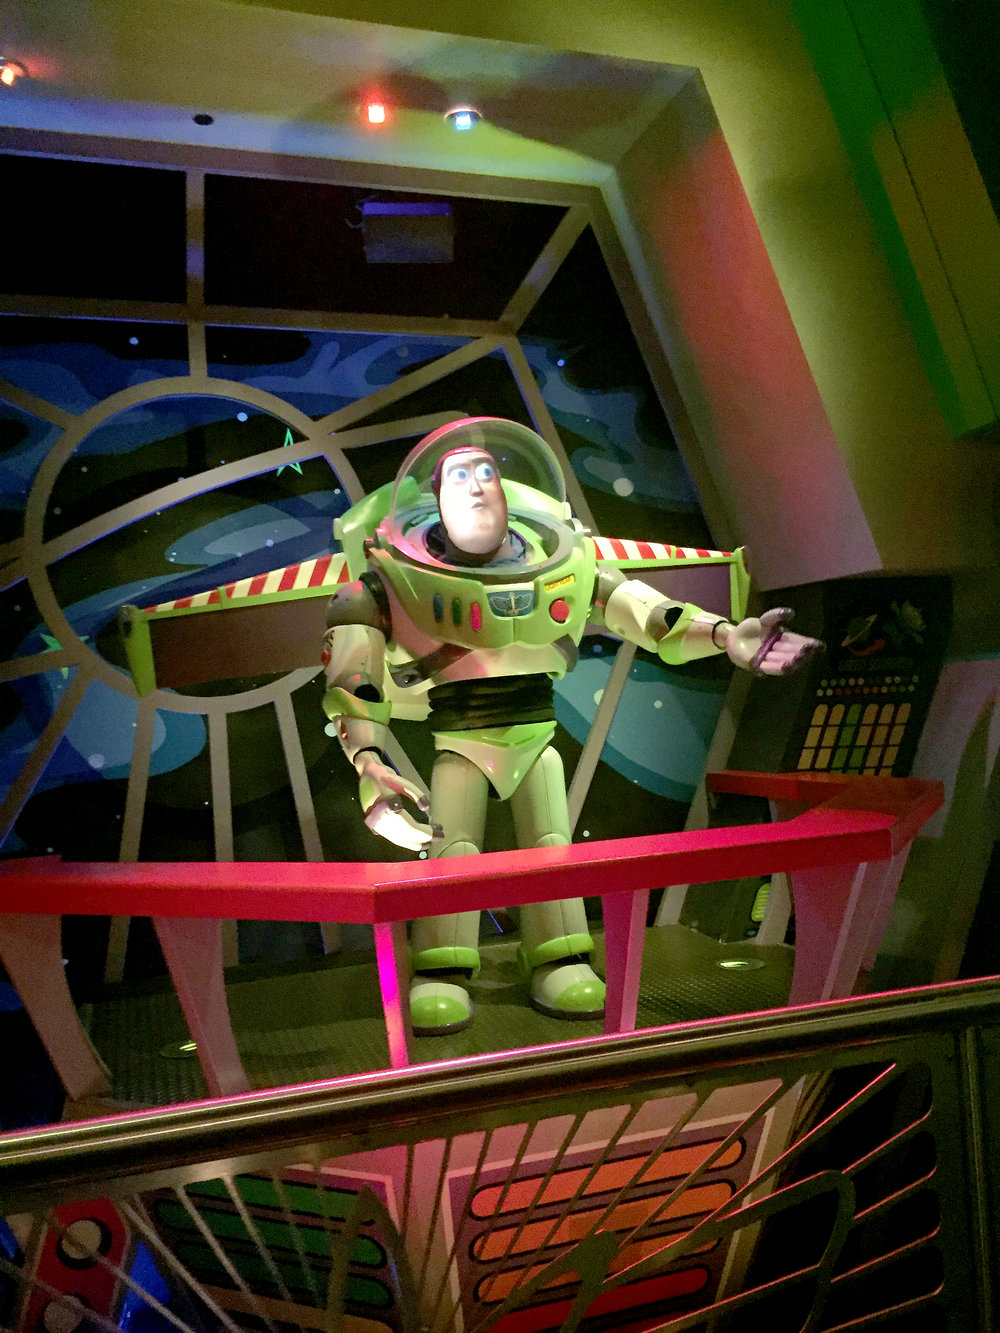 I love that Buzz Lightyear's Space Ranger Spin still has its old-school Pixar quality. I hope they keep it even with all the new Toy Story rides coming in 2018.